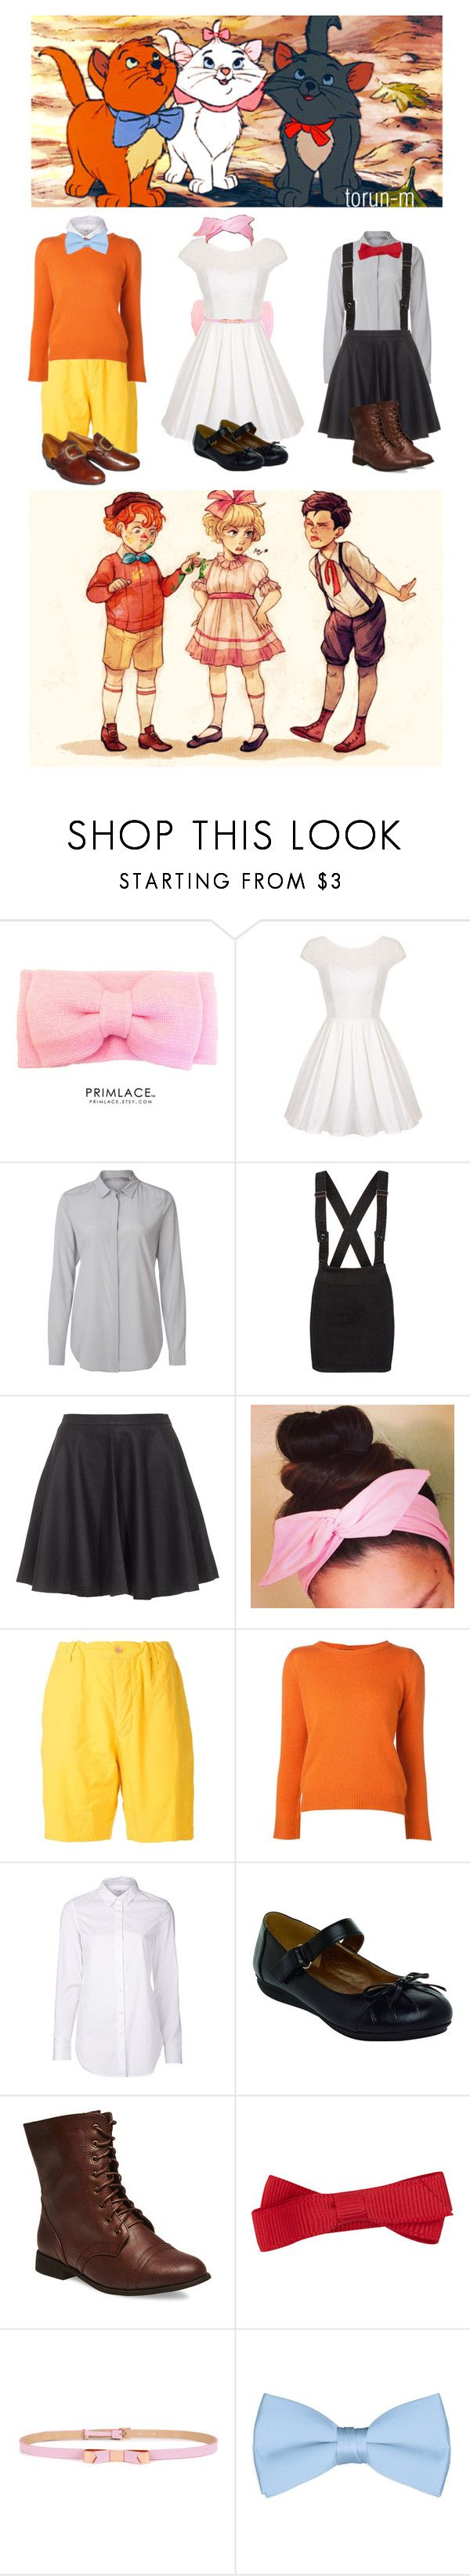 """""""Everybody Wants To Be a Cat"""" by torun-m ❤ liked on Polyvore featuring Chi Chi, Tiger of Sweden, Vero Moda, Joie, Arts & Science, Sofie D'hoore, Closed, Lasonia, Wet Seal and Ted Baker"""